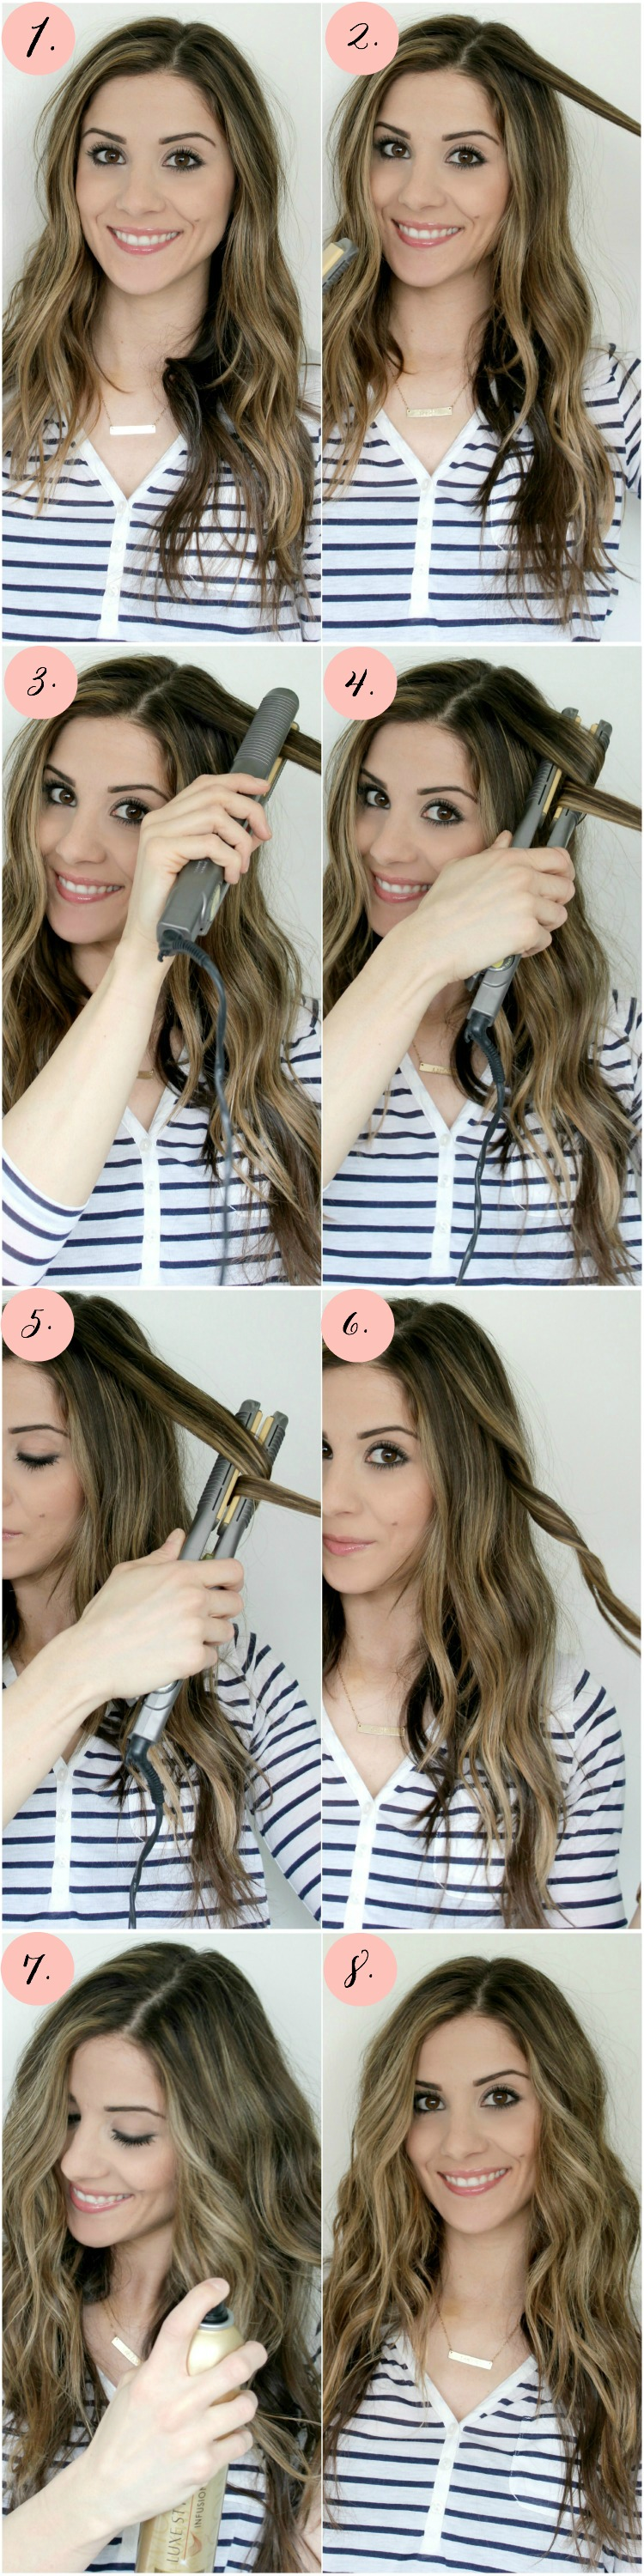 Flat Iron Curls Tutorial Lauren Mcbride